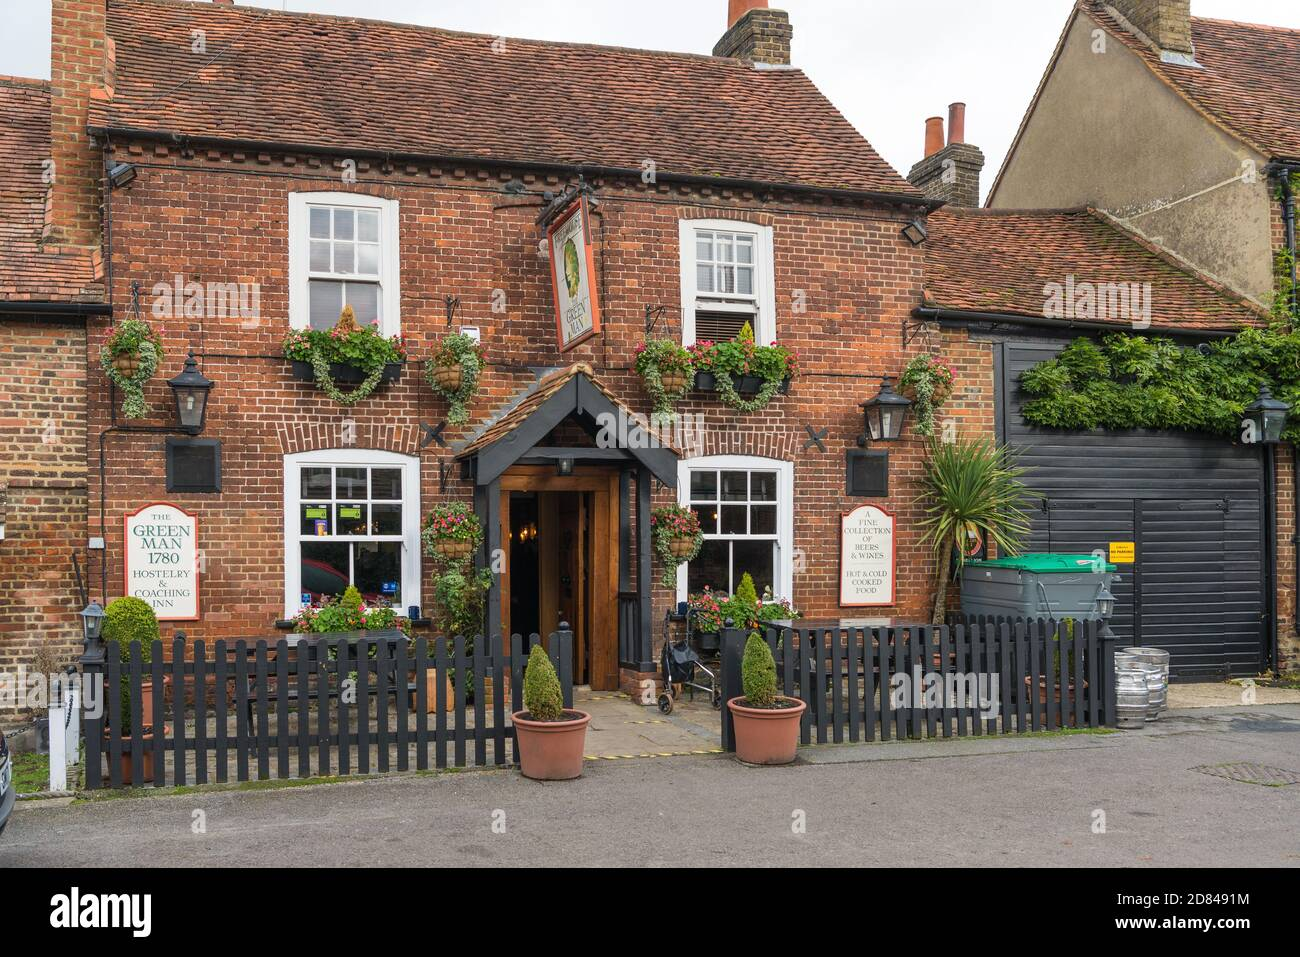 The Green Man, a picturesque old pub in Denham village, Buckinghamshire, England, UK Stock Photo